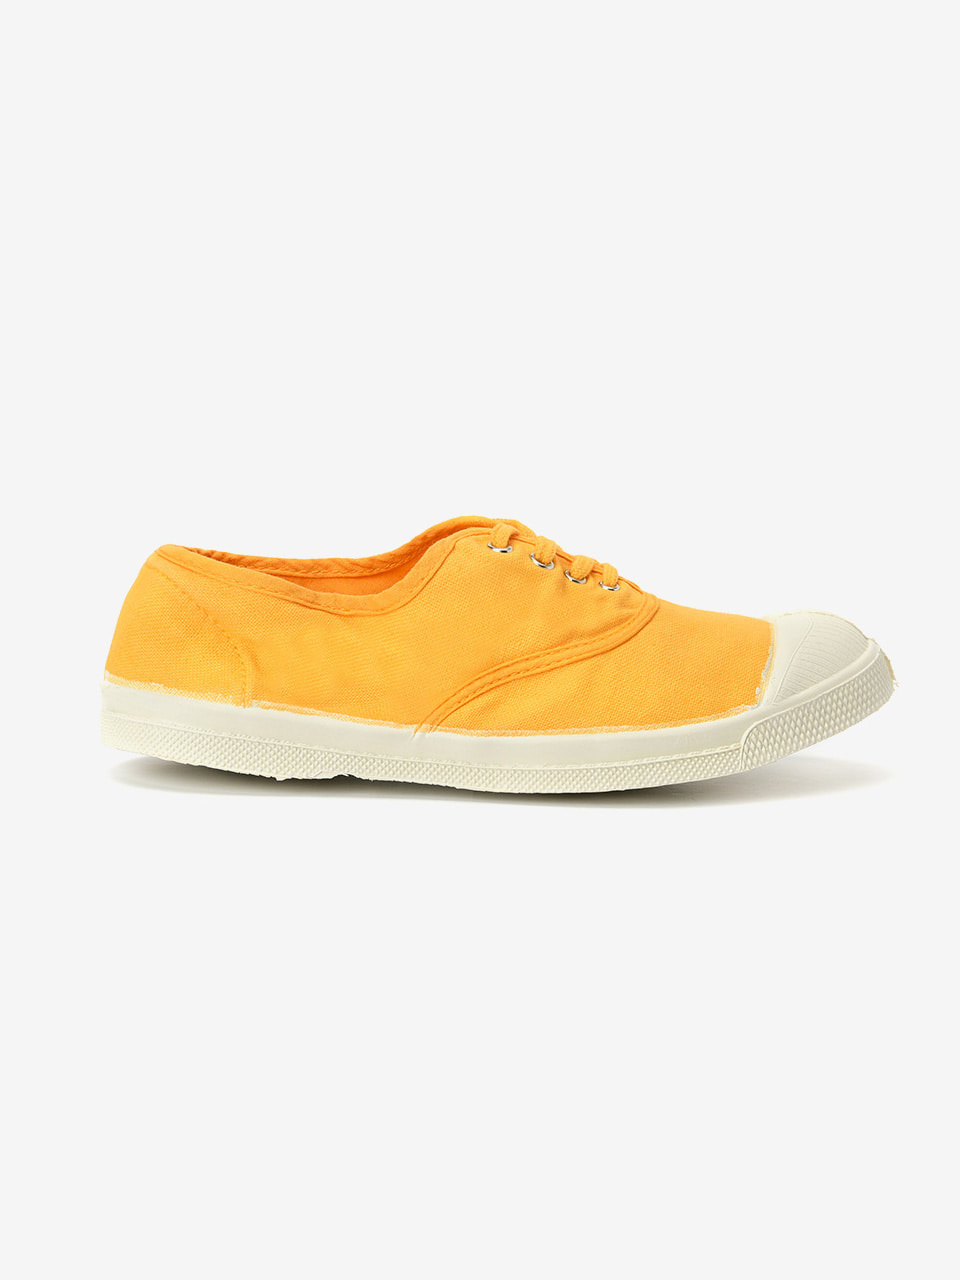 [Woman Lacet] Buttercup YellowBS0SSO110YL